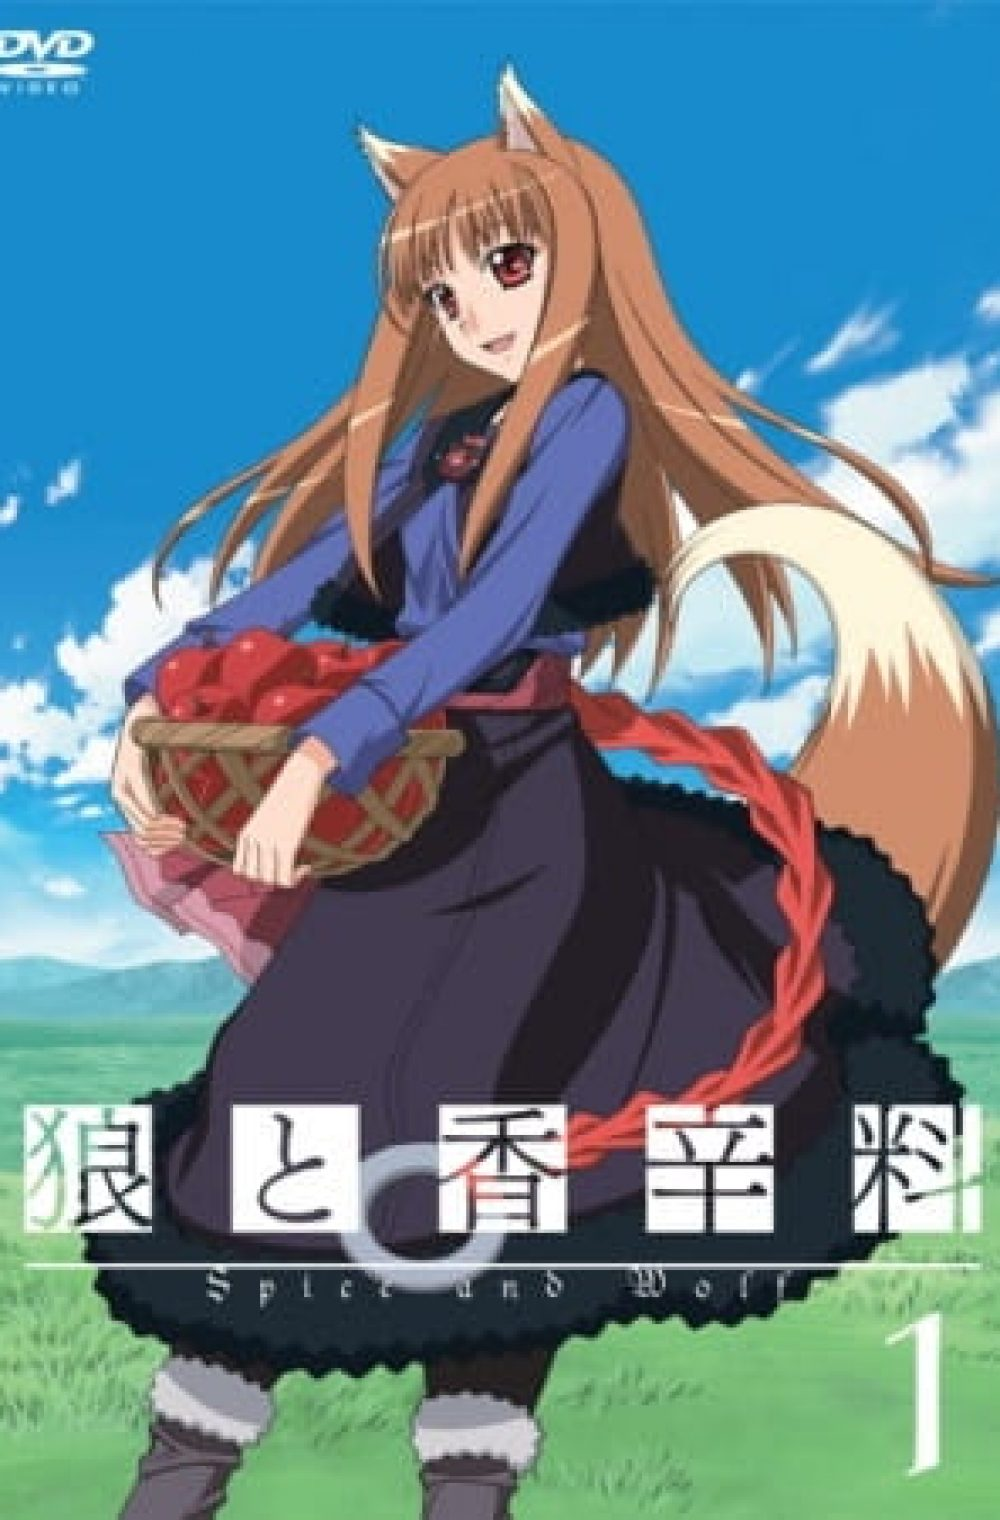 Spice and Wolf (Bluray Ver.)